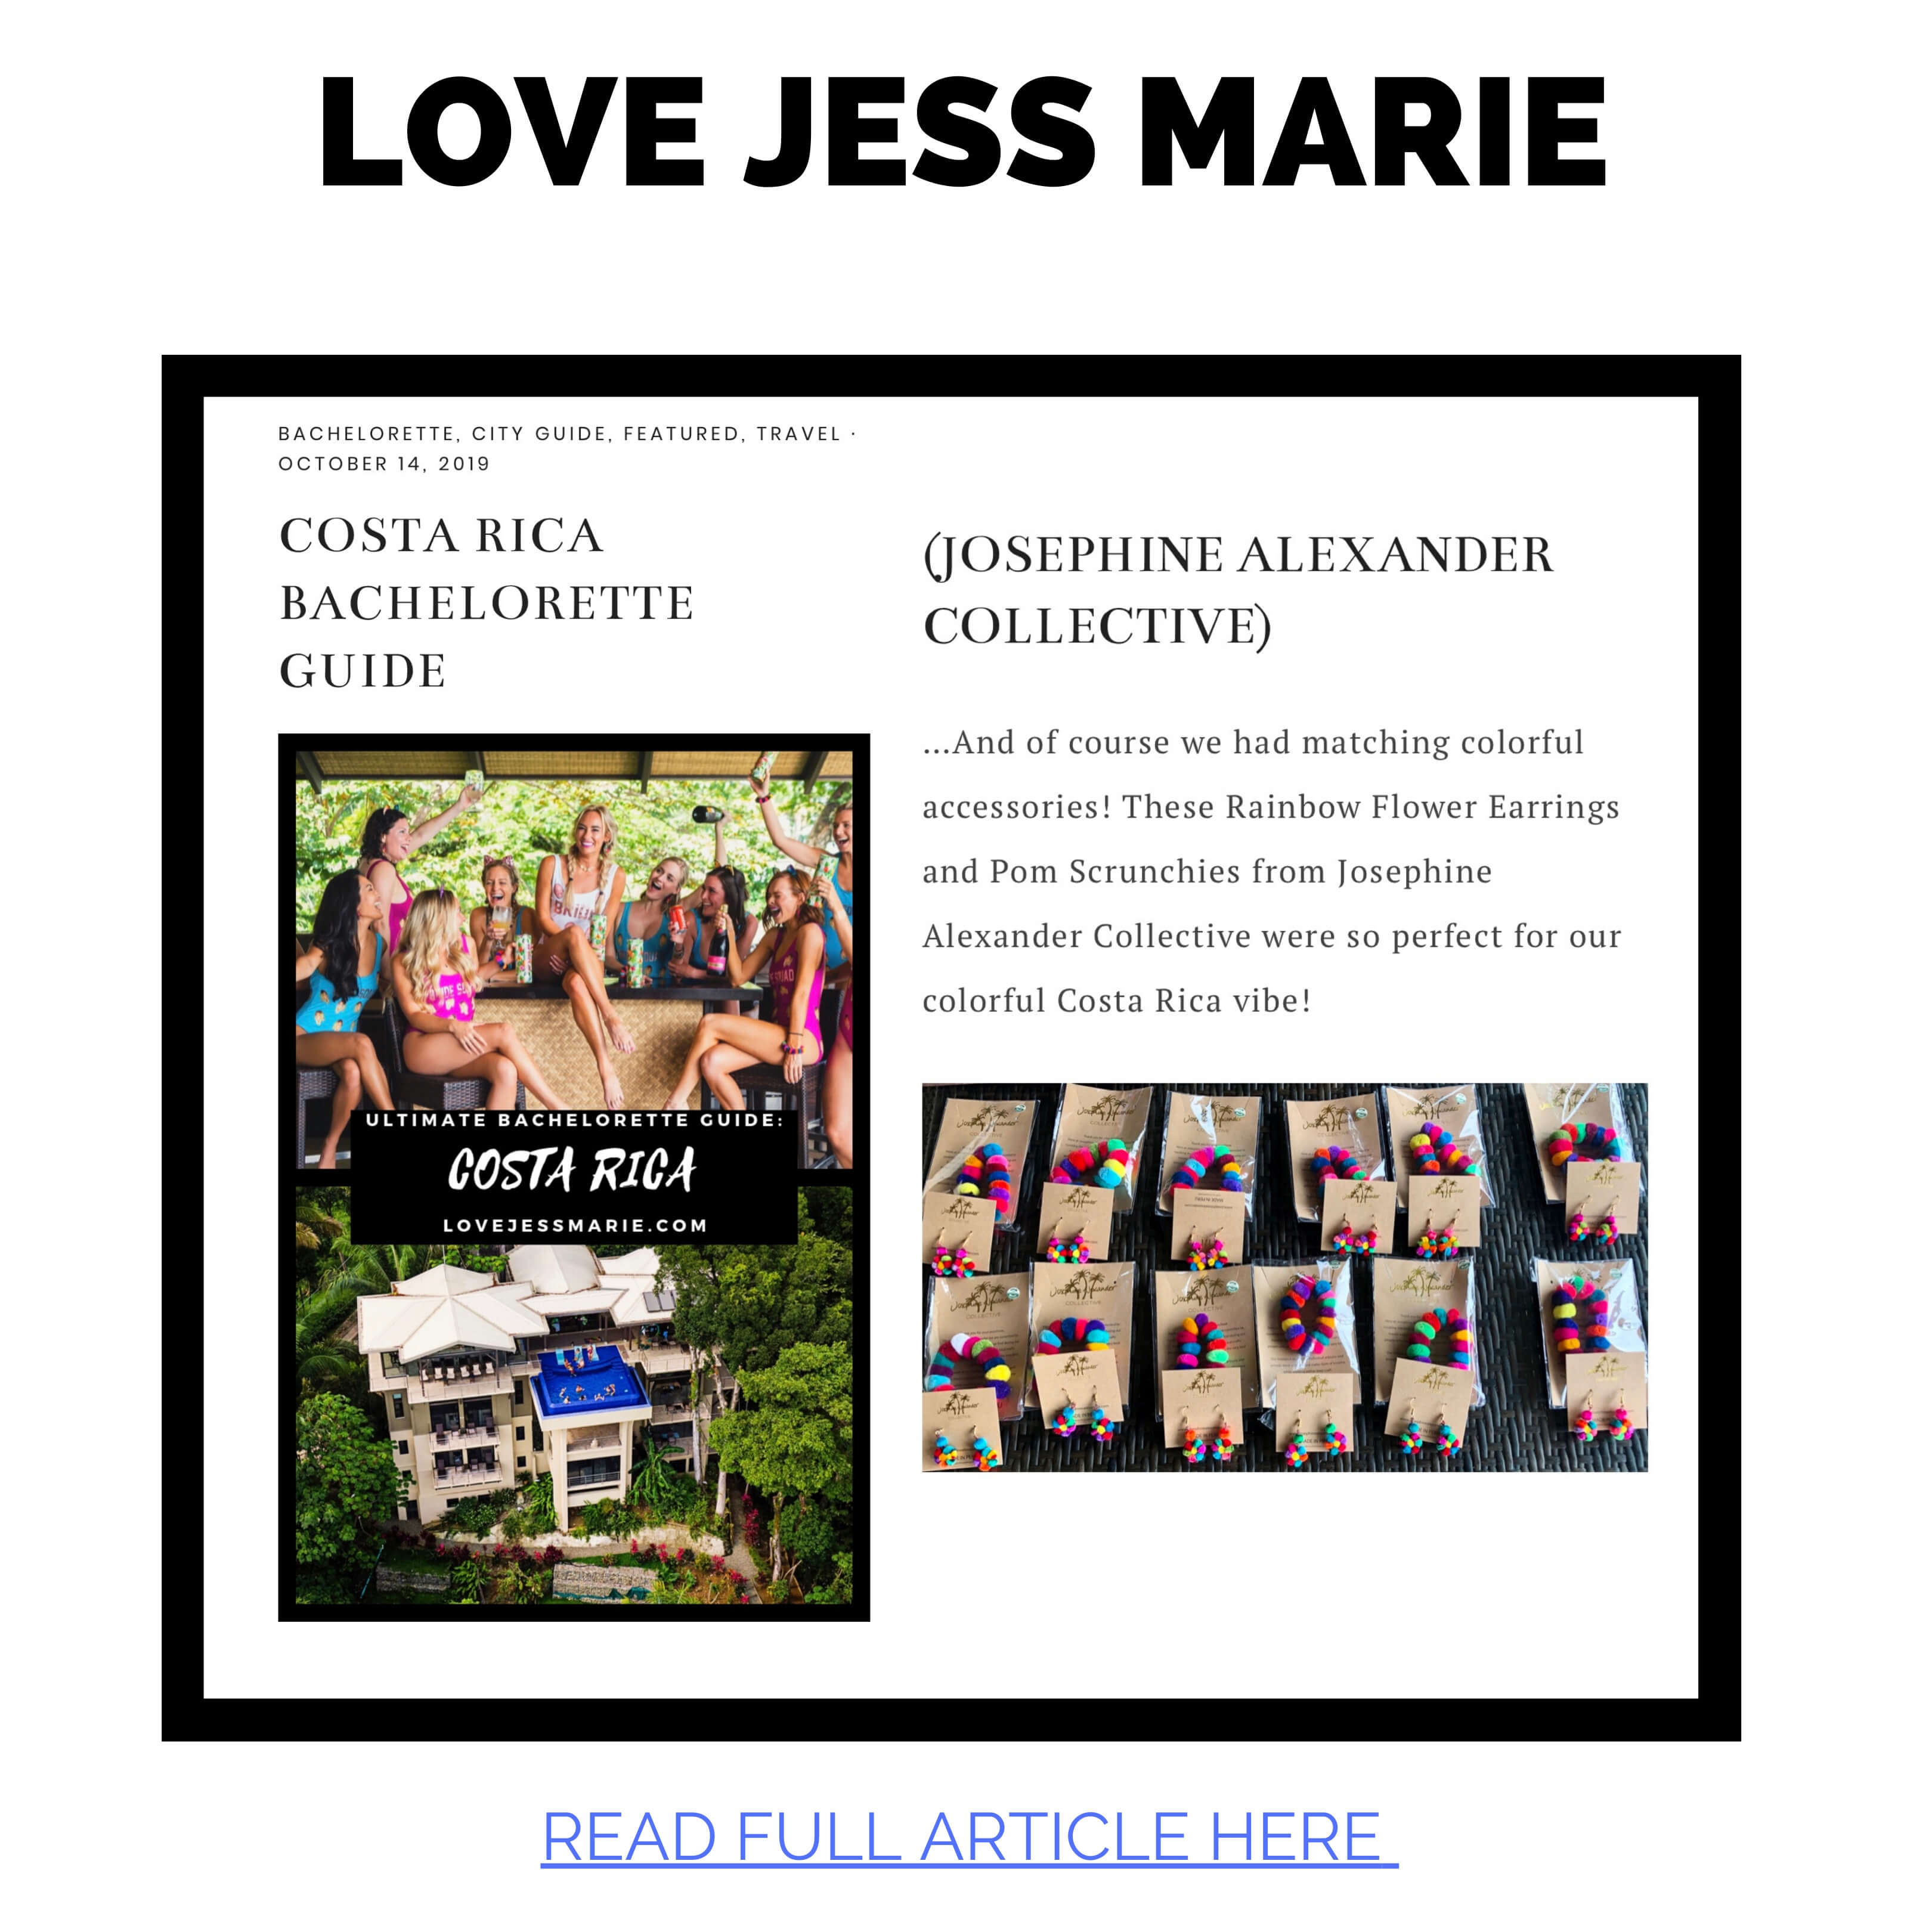 JAC featured in Love Jess Marie